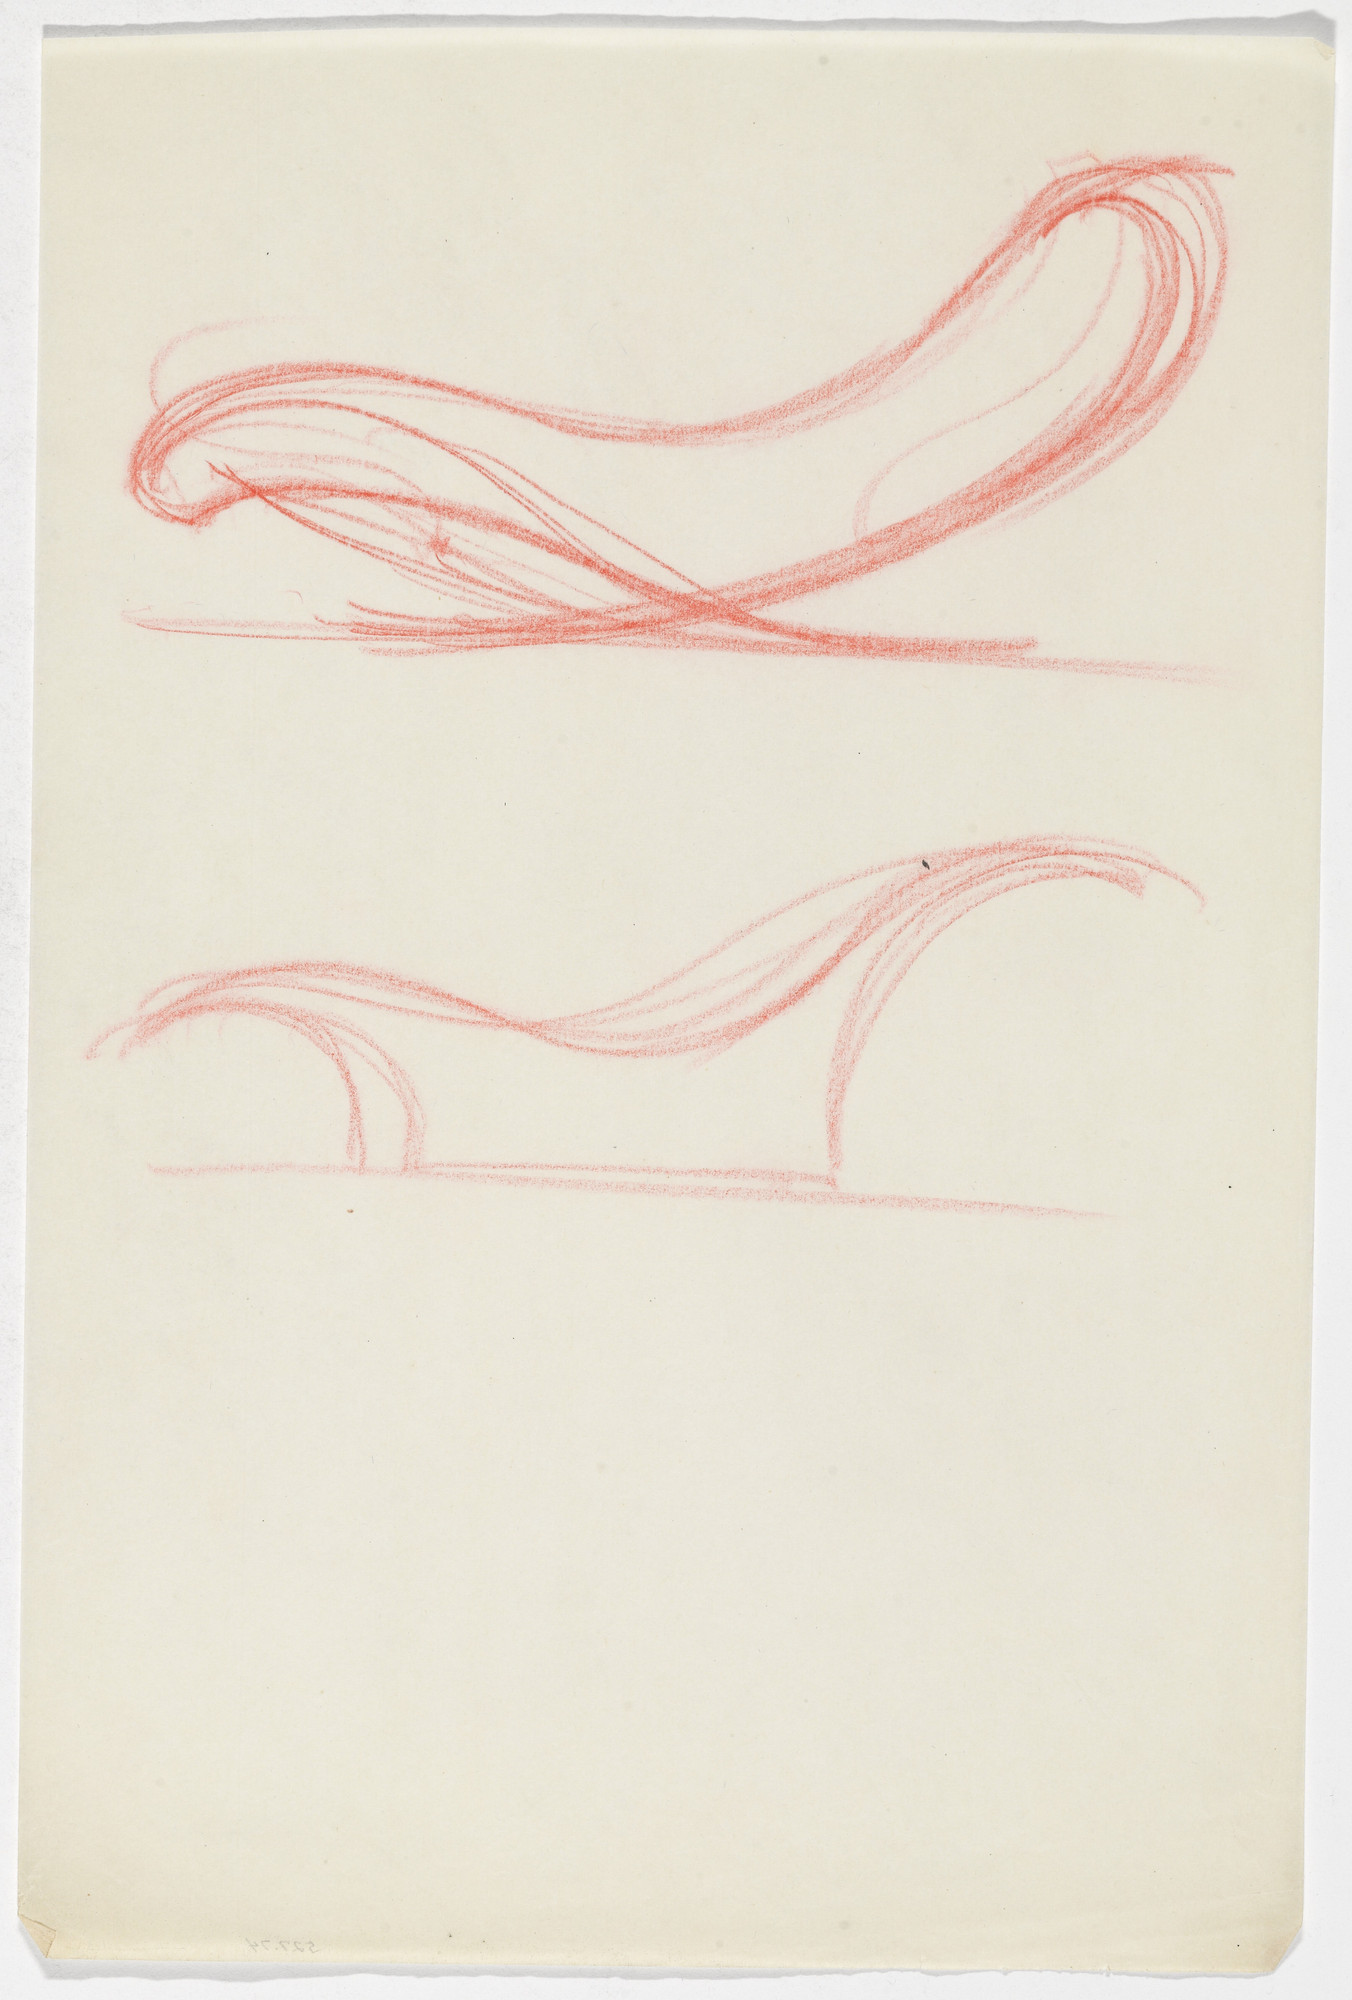 Ludwig Mies van der Rohe. Reclining Chair without Arms (Two elevation sketches). 1934